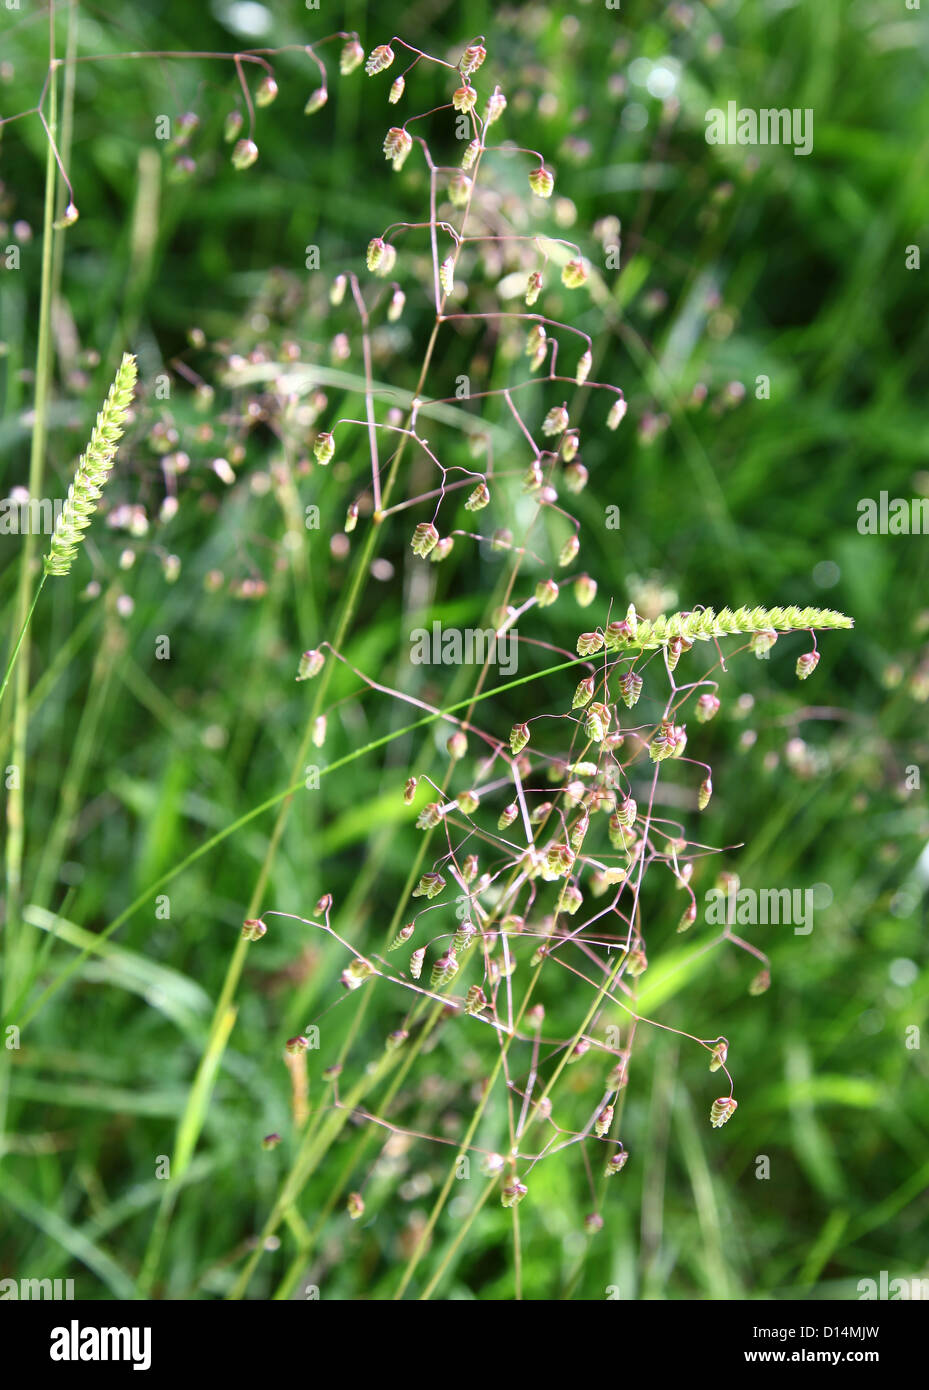 Quaking grass (Briza media) and Crested Dog's-tail grass (Cynosurus cristatus)  in a field England UK - Stock Image